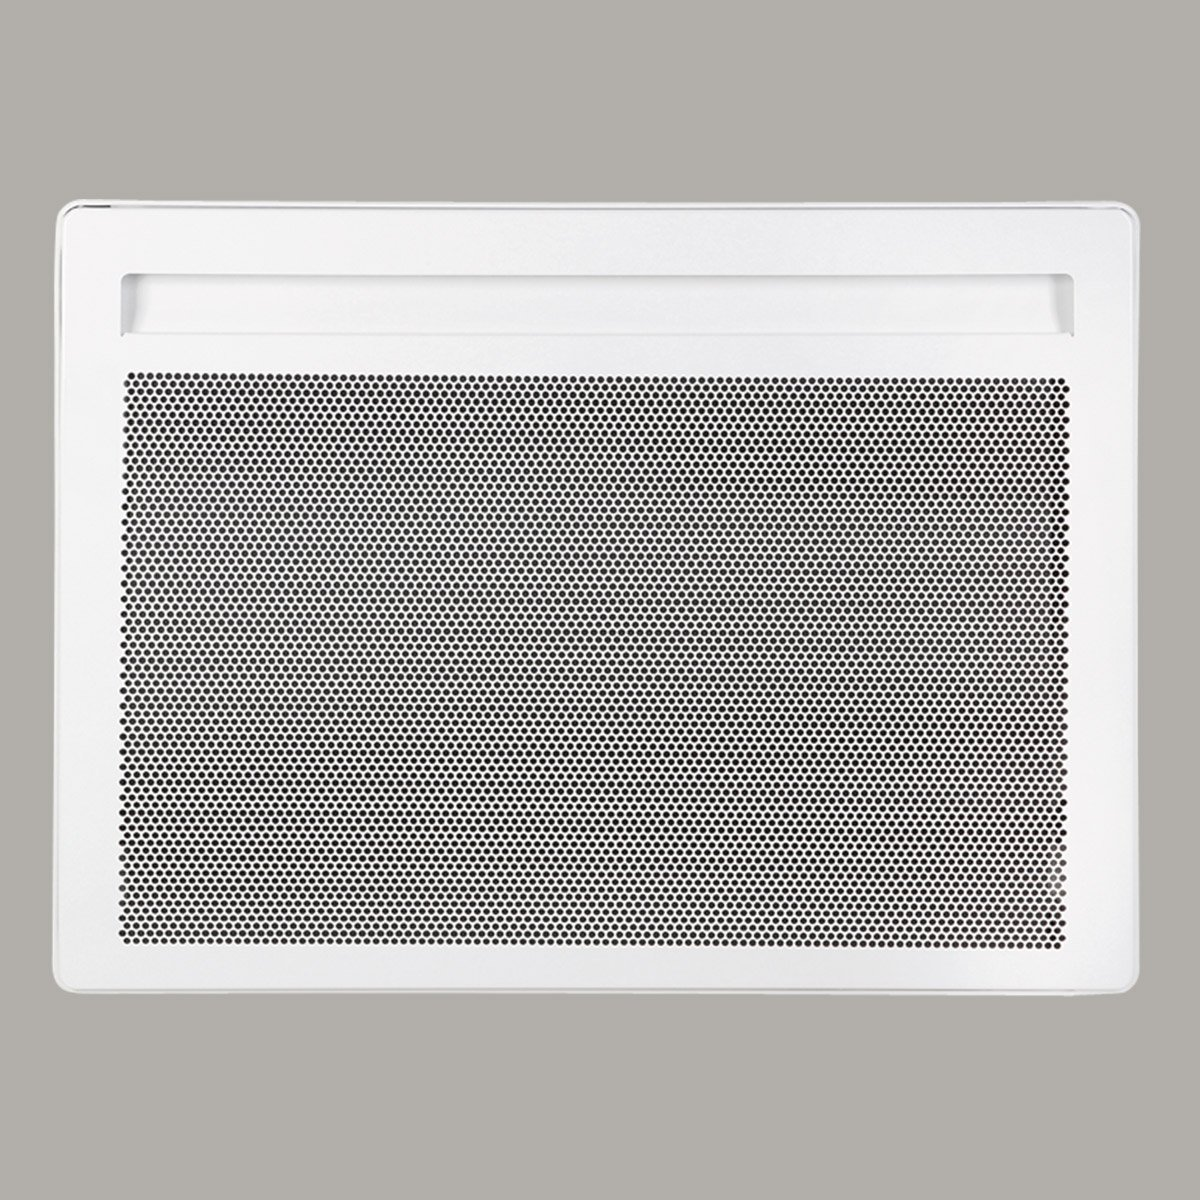 Radiador eléctrico por panel radiante solius 2000w atlantic: Amazon.es: Iluminación